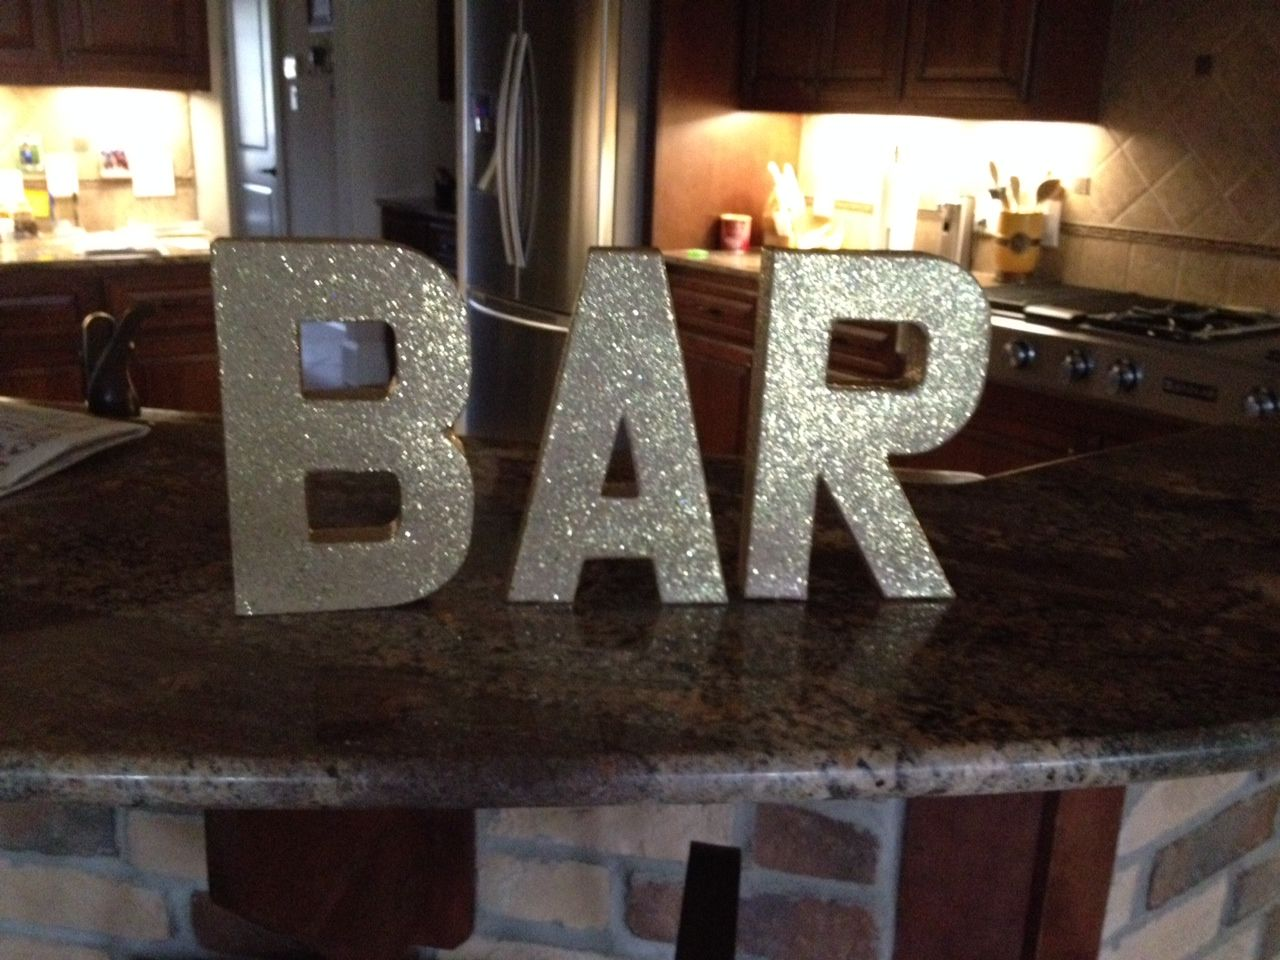 Gold Glitter Cardboard Letters Bought At Hobby Lobby And I Used Mog Podge Sp With Gold Glitter Added As I Brushed It On Cardboard Letters Birthday Candles